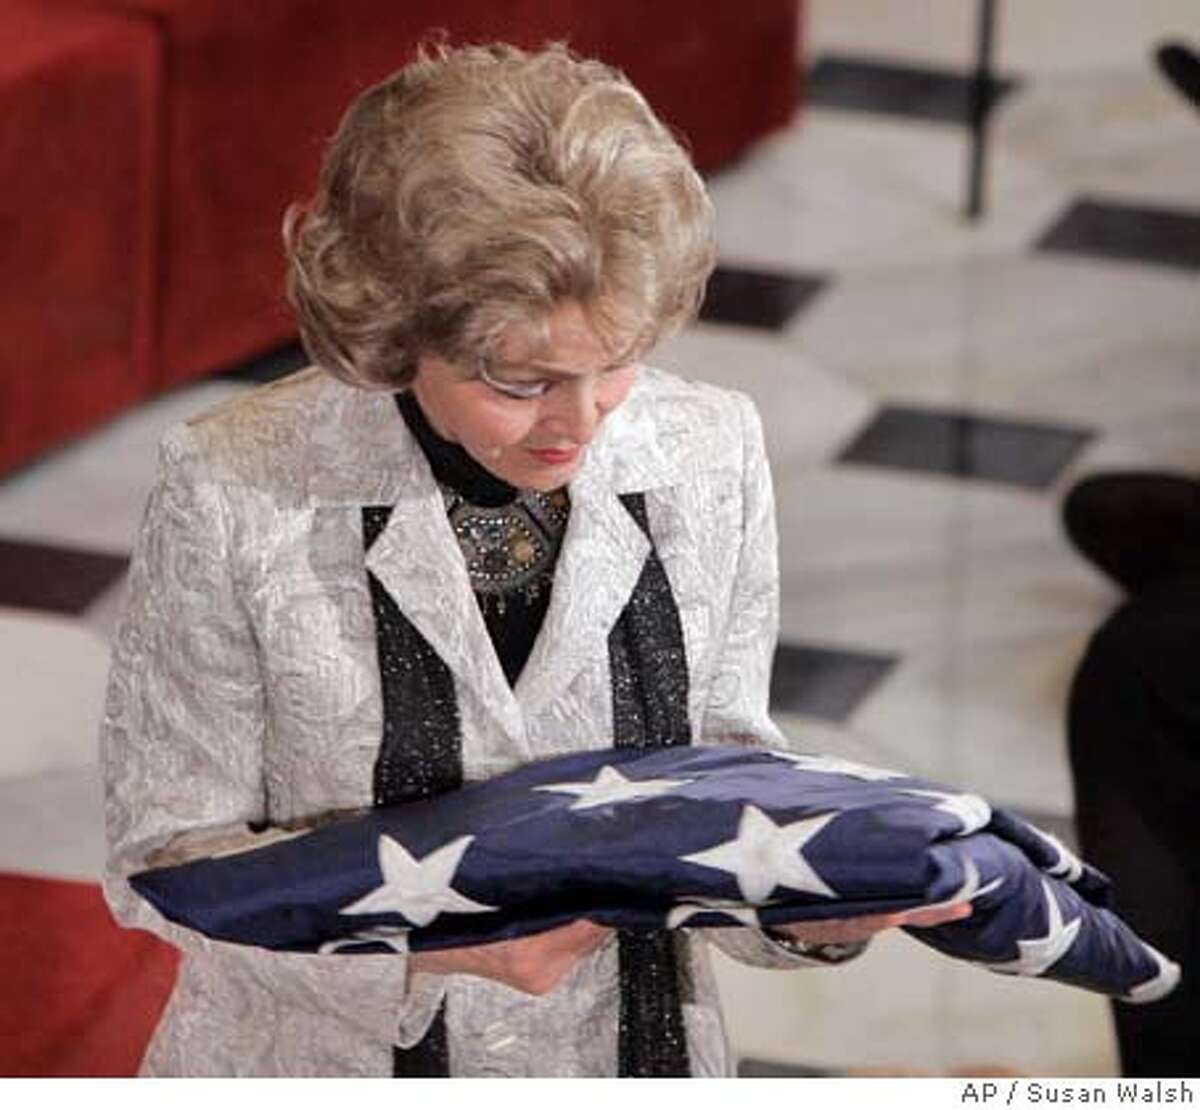 Annette Lantos, wife of the late Rep. Tom Lantos, D-Calif., holds a flag that she was presented during a memorial service for Lantos, Thursday, Feb. 14, 2008 on Capitol Hill in Washington. (AP Photos/Susan Walsh)